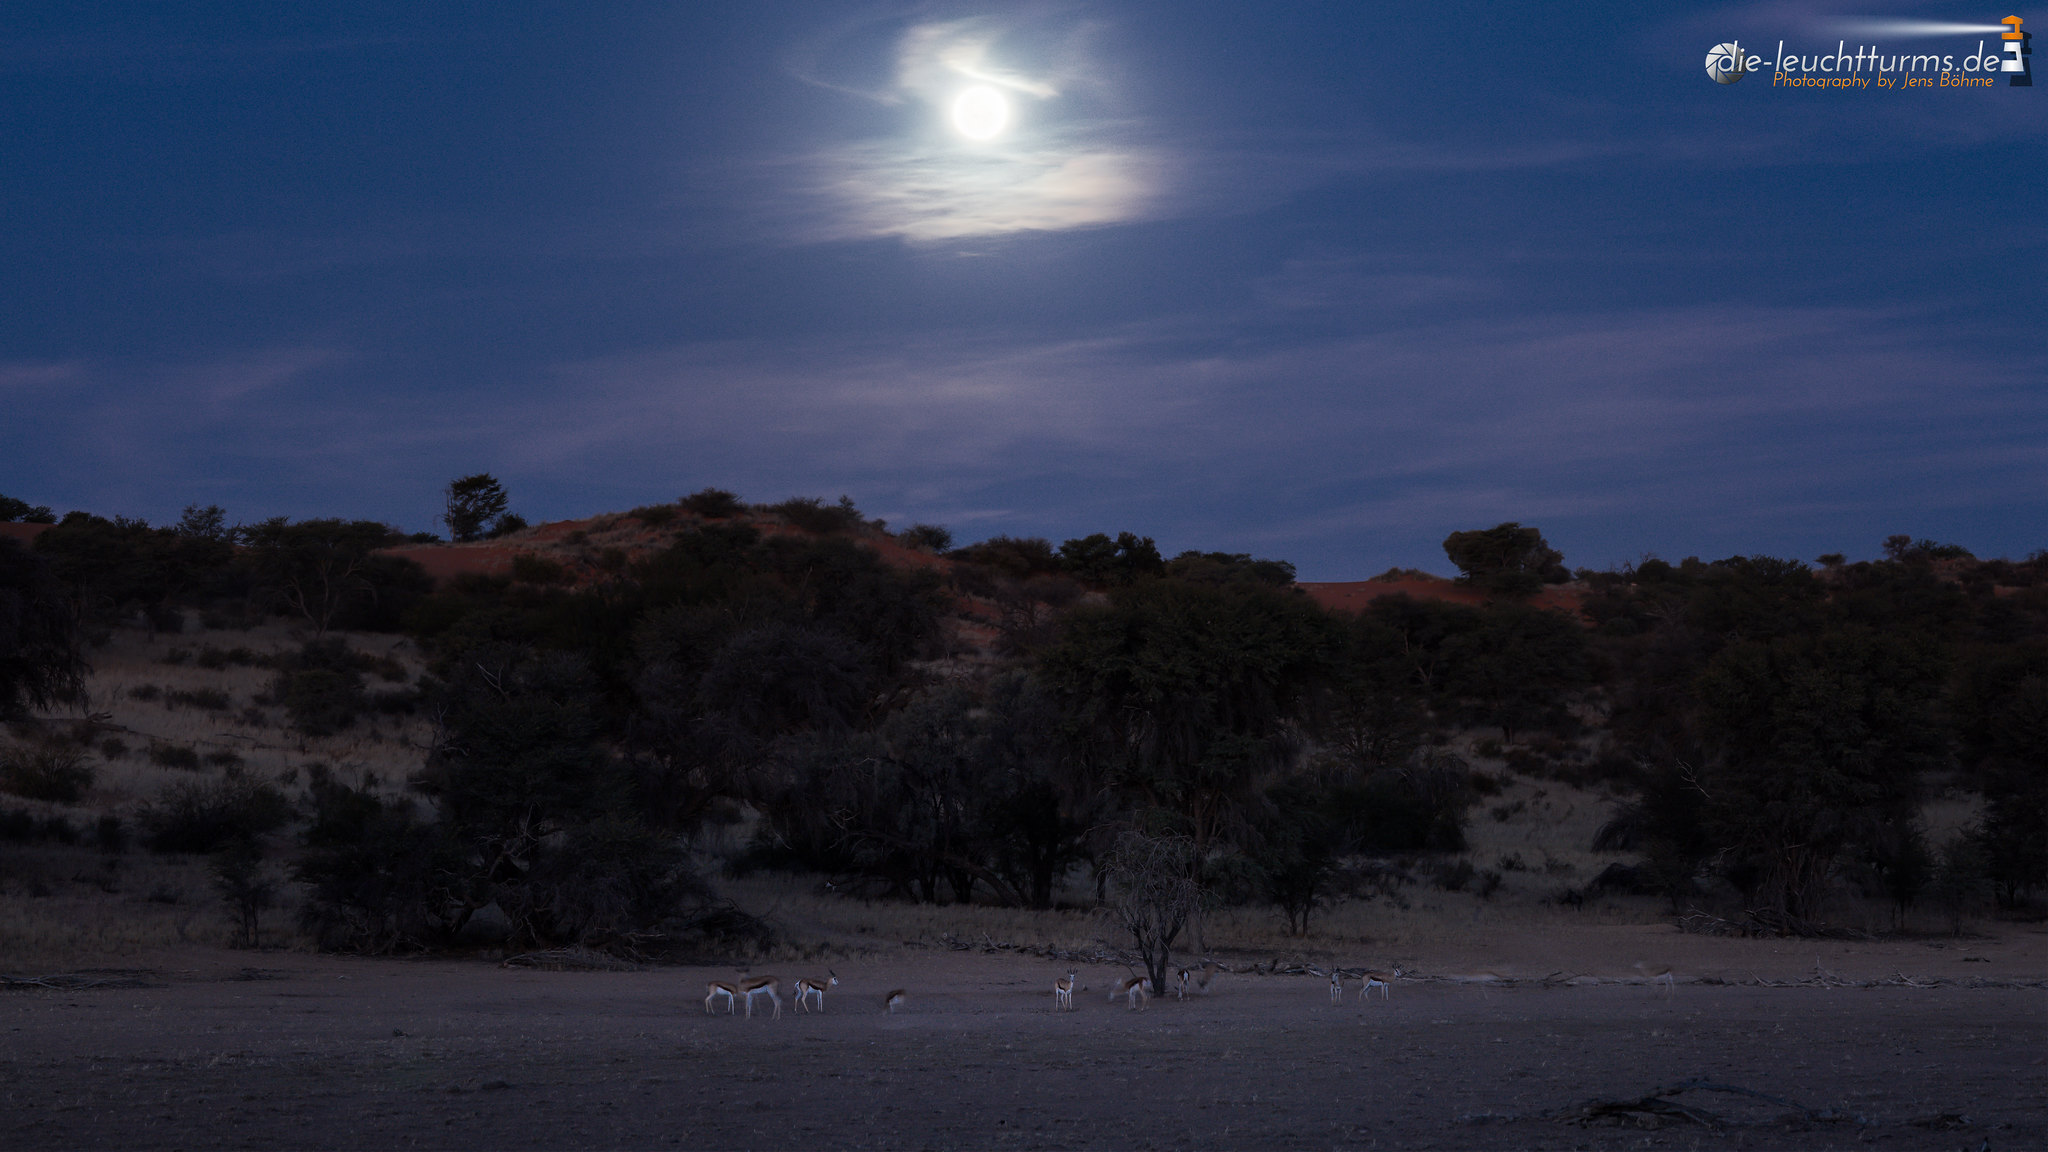 Springboks under Moonlight